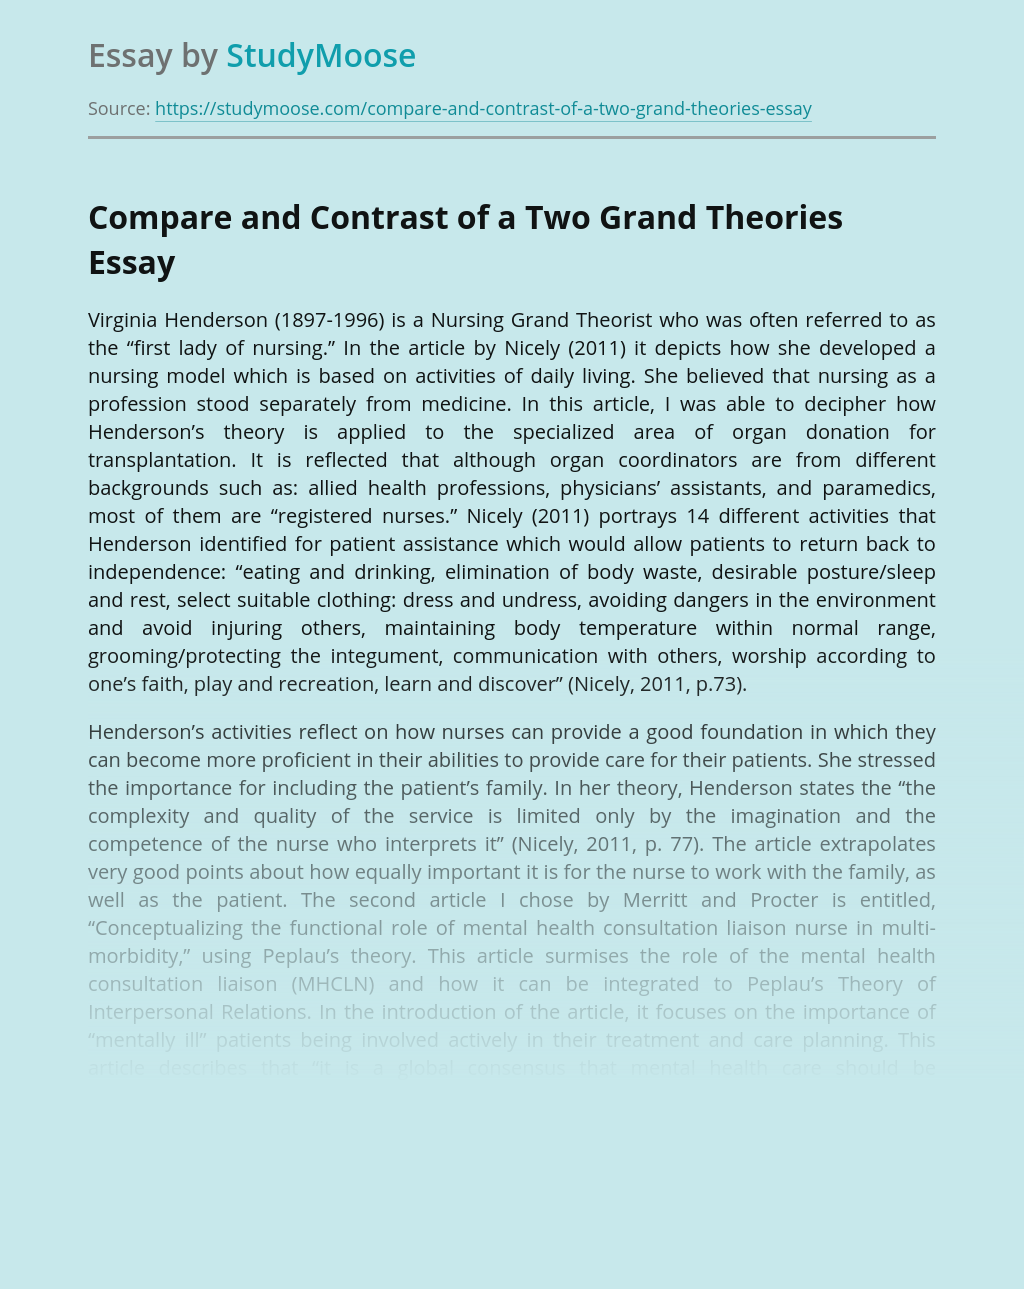 Compare and Contrast of a Two Grand Theories